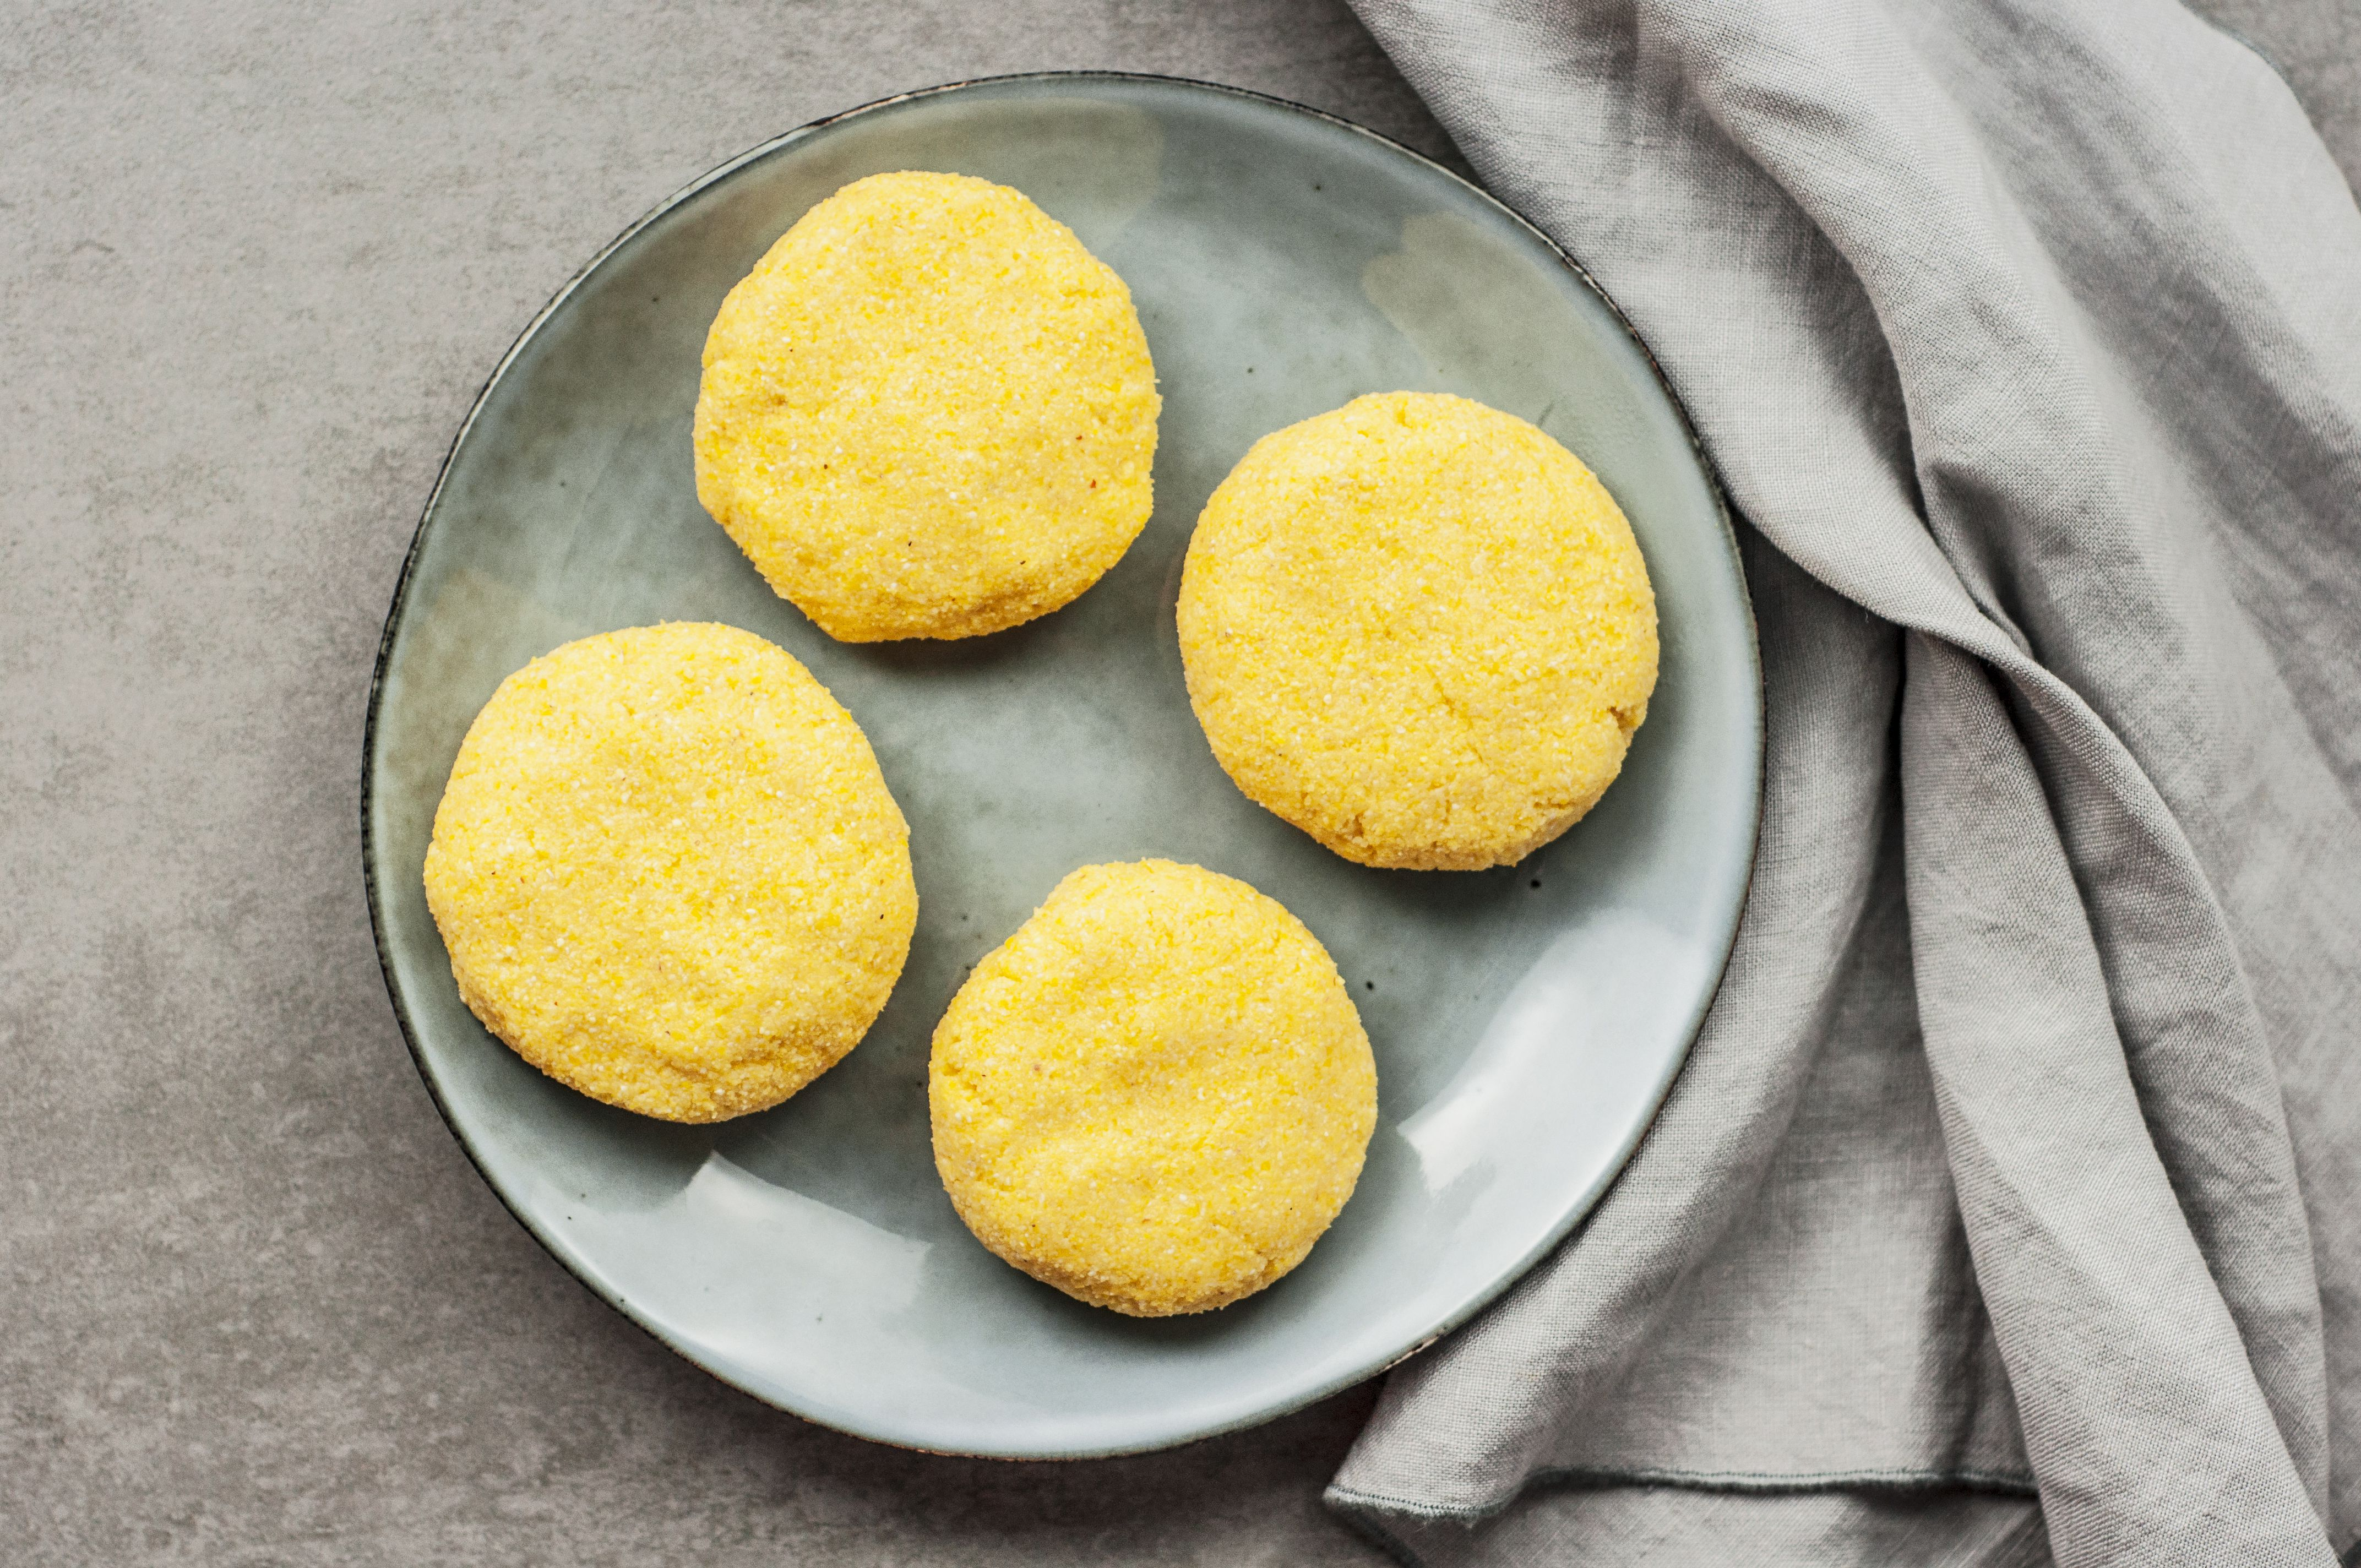 Mixture is formed into four cornbreads on a plate